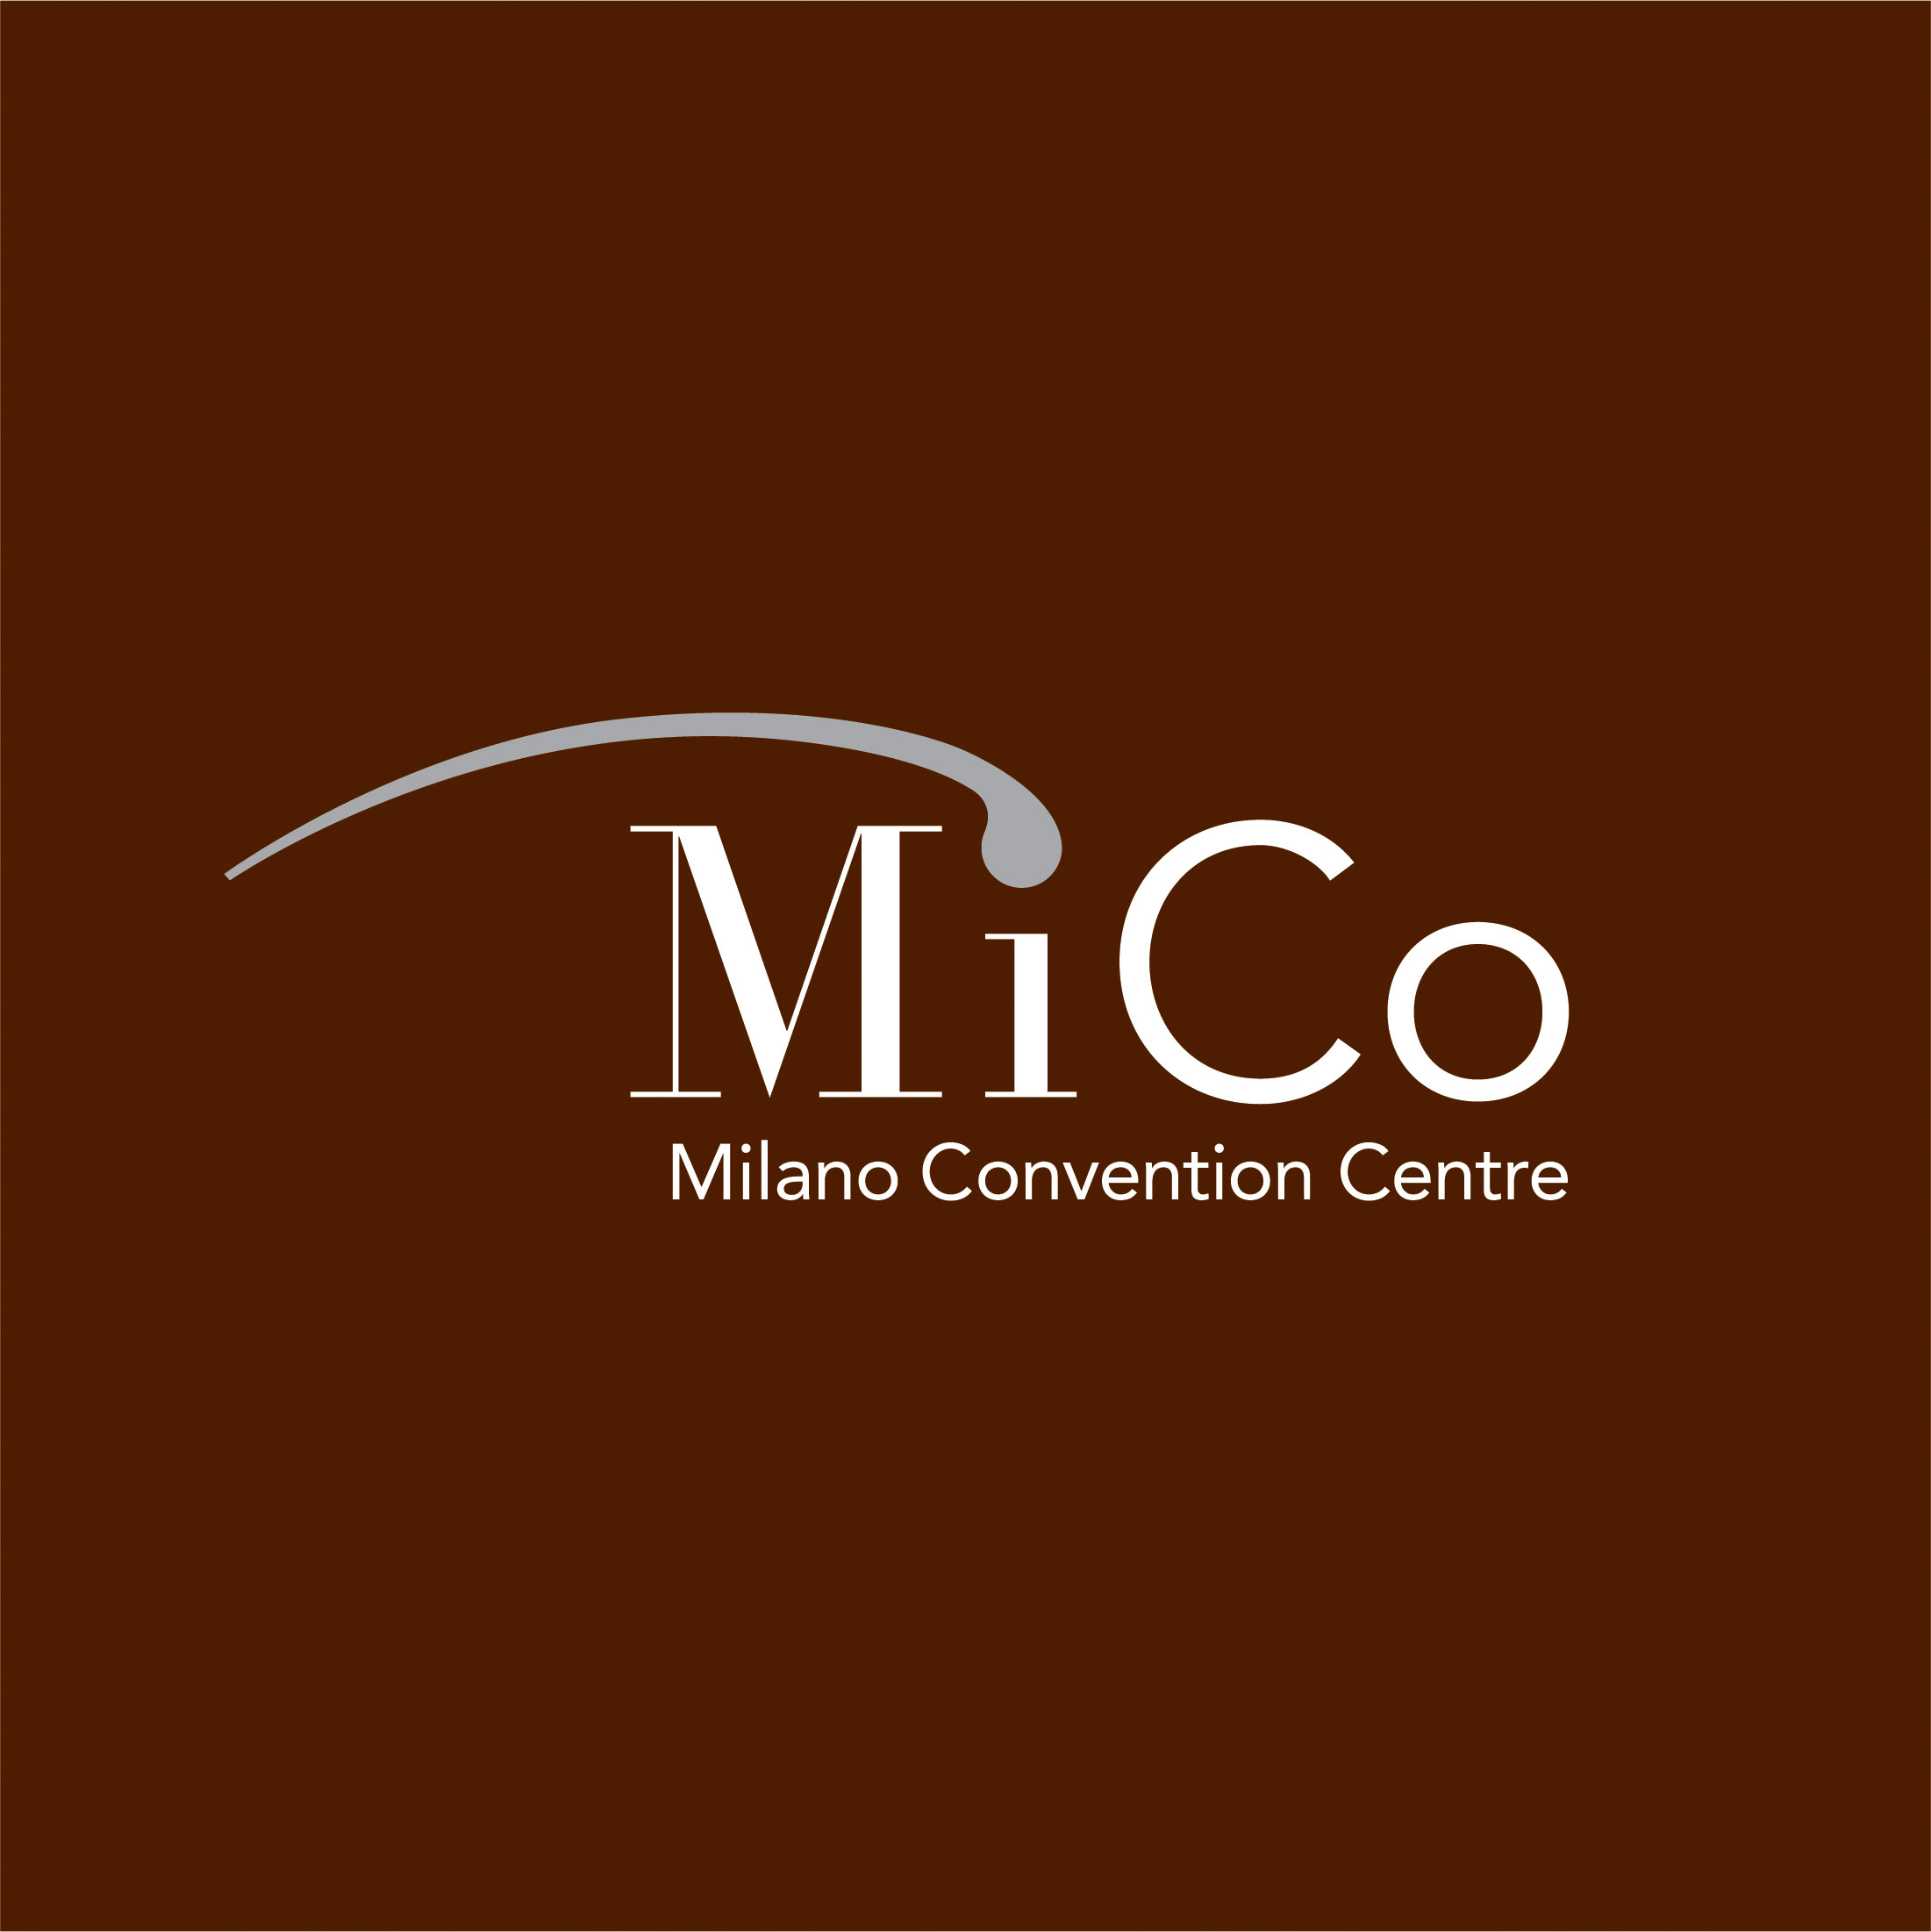 Milano Convention Centre